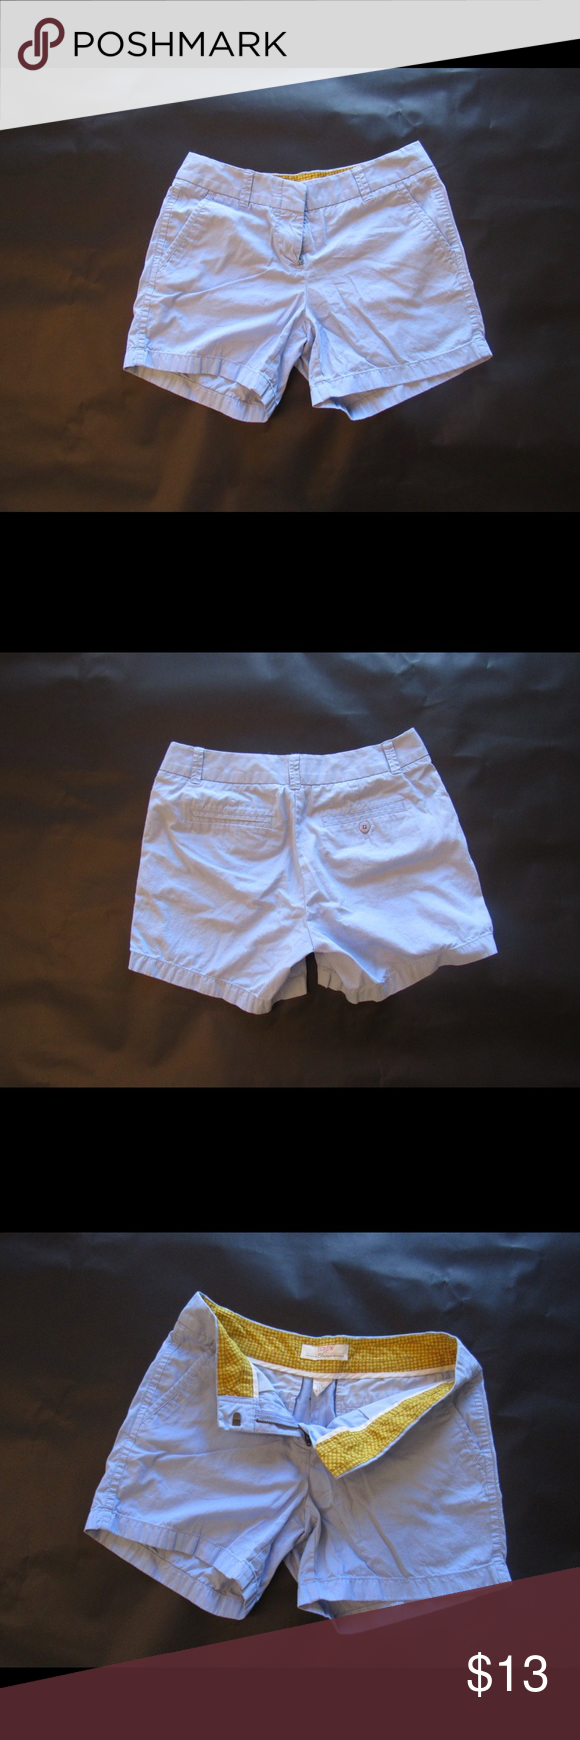 Light Blue Chino Shorts These light blue preloved beauties will surely turn heads this summer!